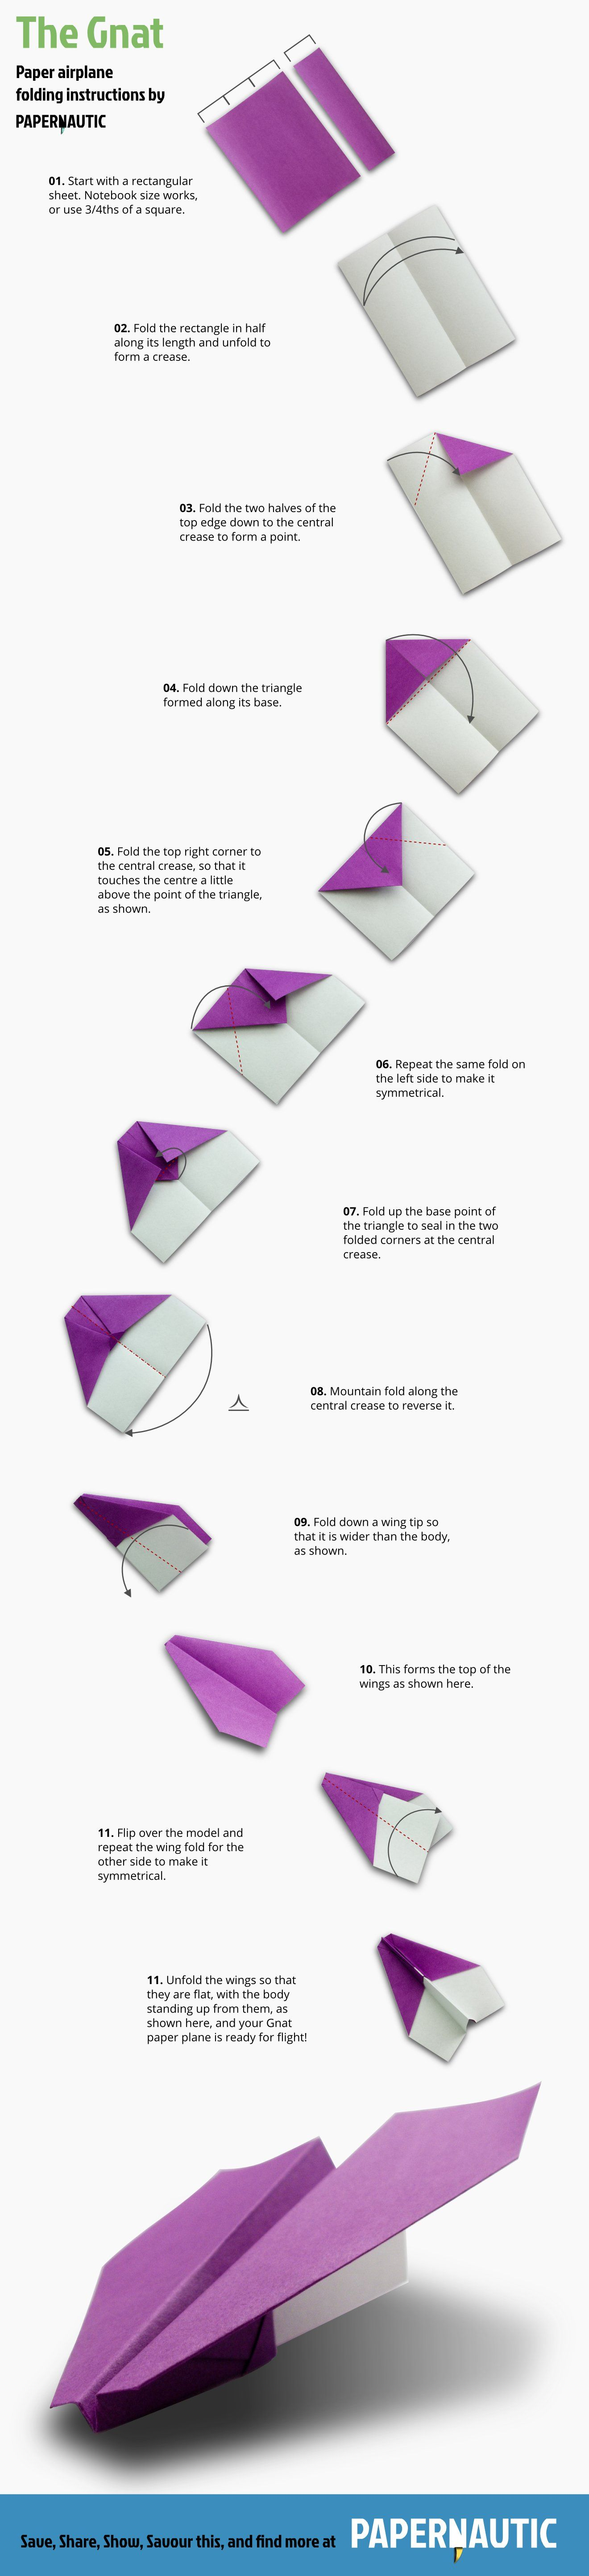 Paper Plane Folding Instructions A Procedural Infographic That Also Has Pleasing Form